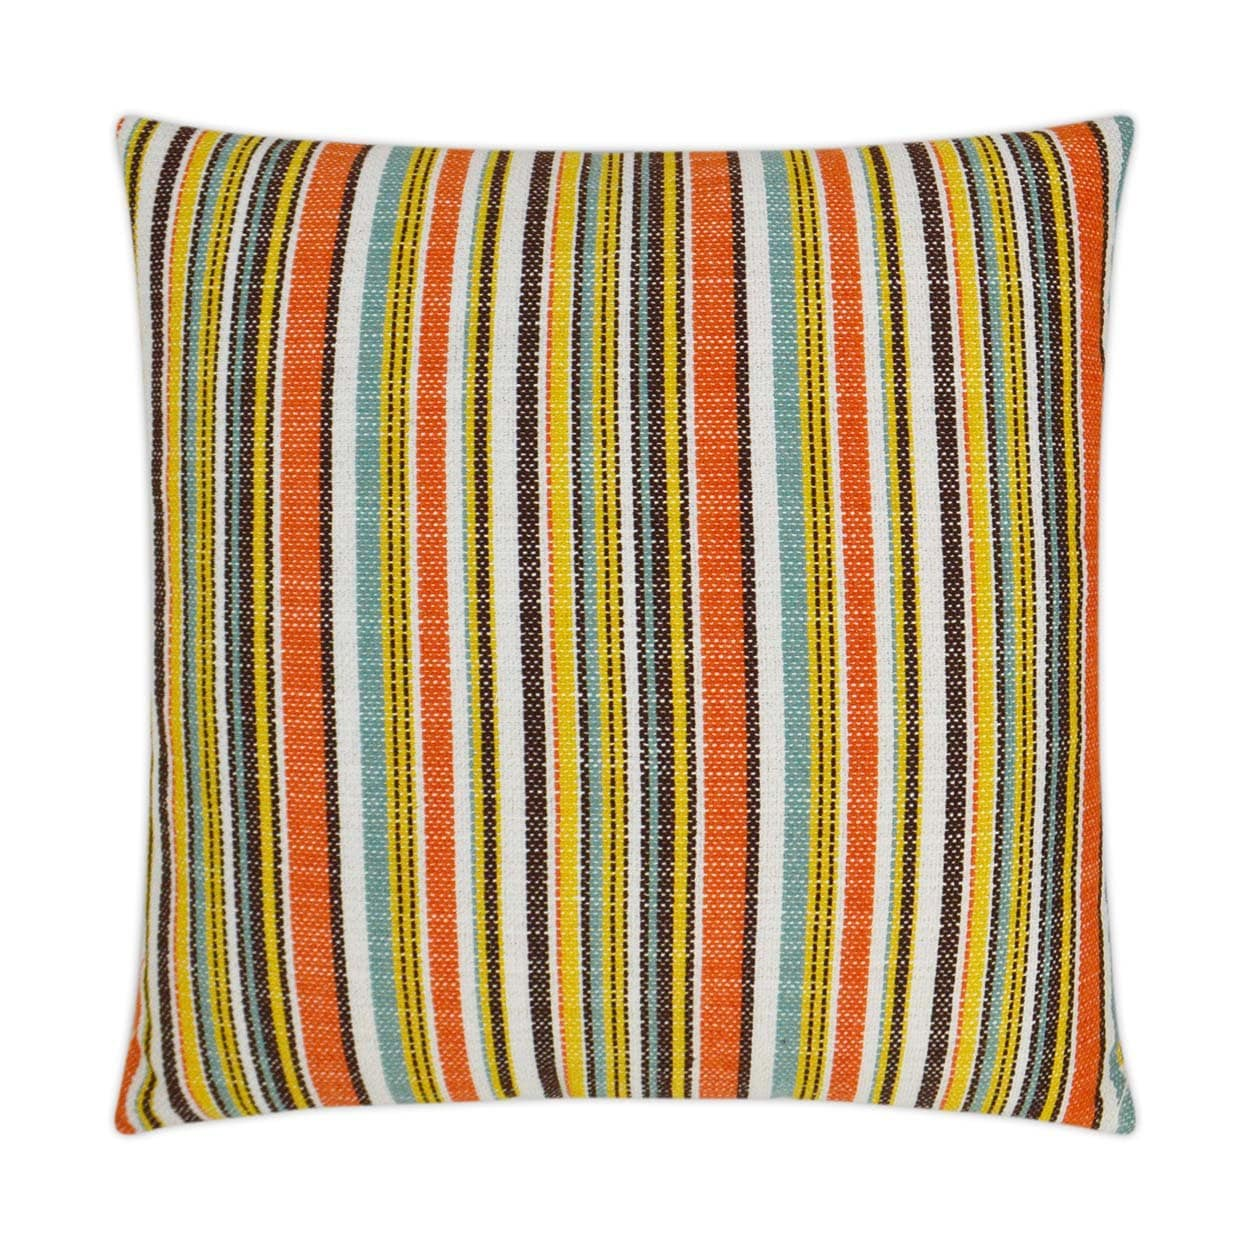 D.V. Kap D.V. Kap Fancy Stripe Outdoor Pillow - Available in 2 Colors Navy OD-303-N